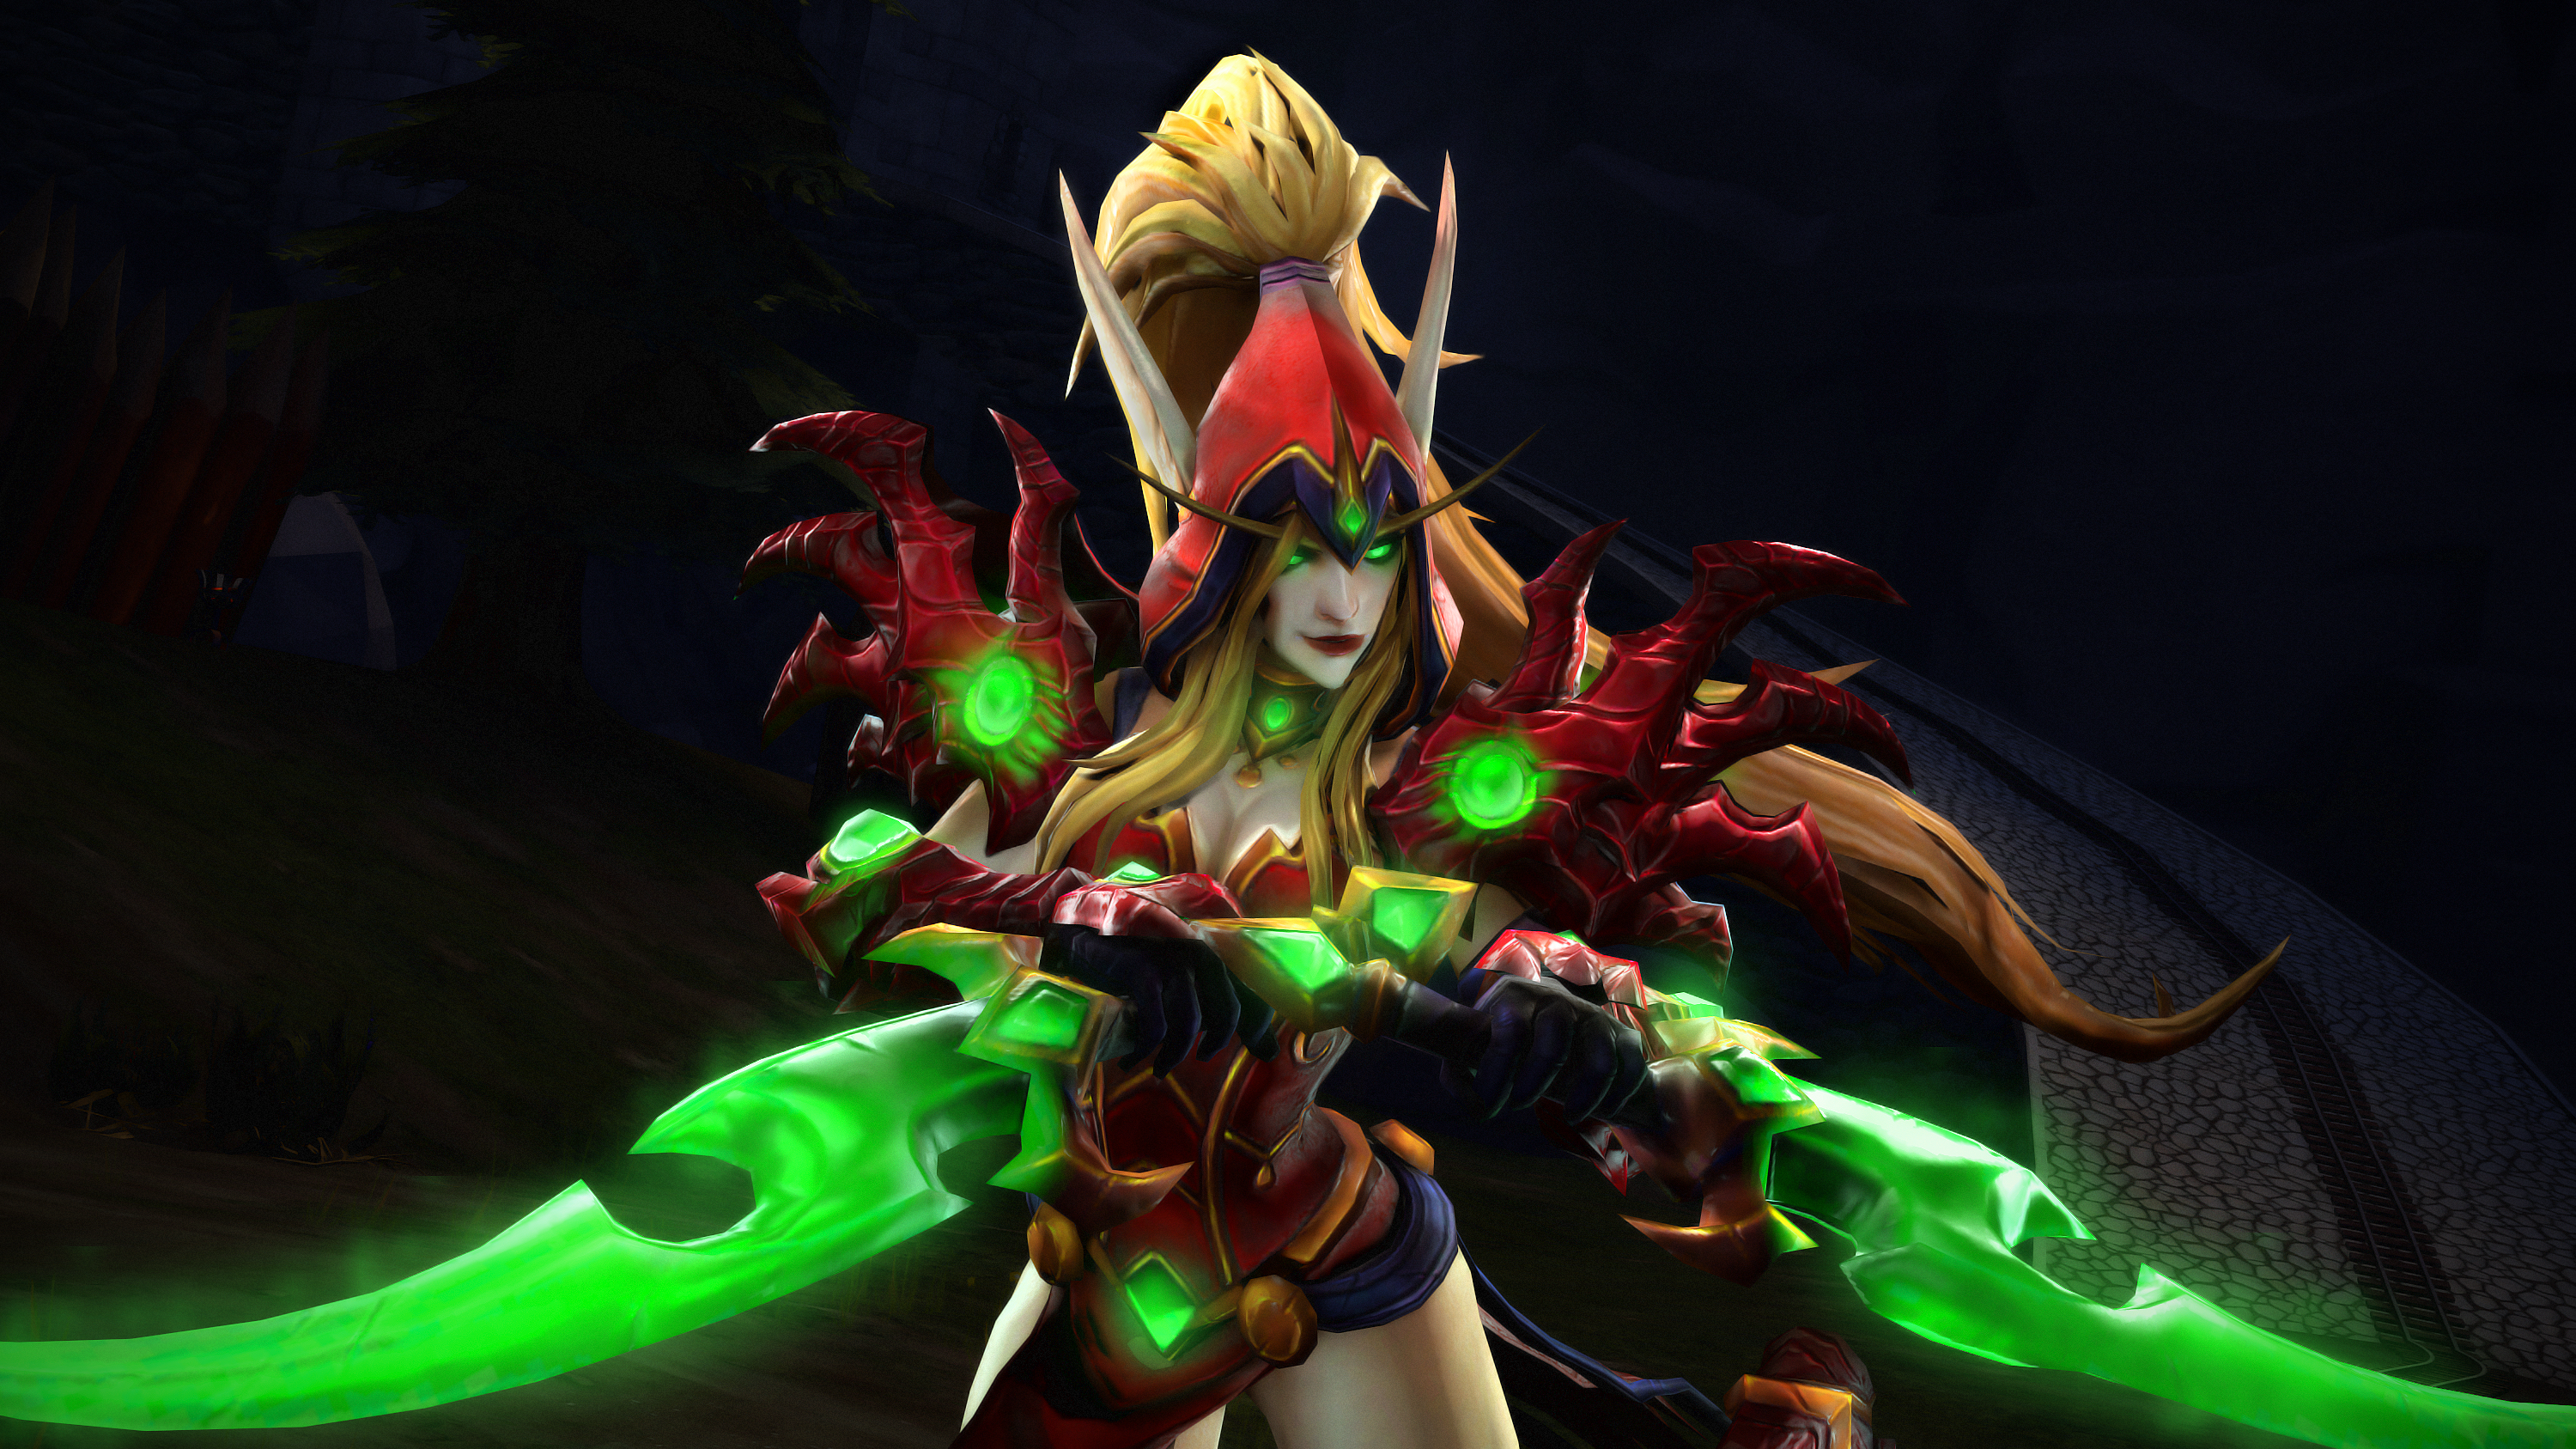 Valeera Sanguinar By Darkness Ringo On Deviantart Heroes of the storm map objectives & statistics | hots logs. valeera sanguinar by darkness ringo on